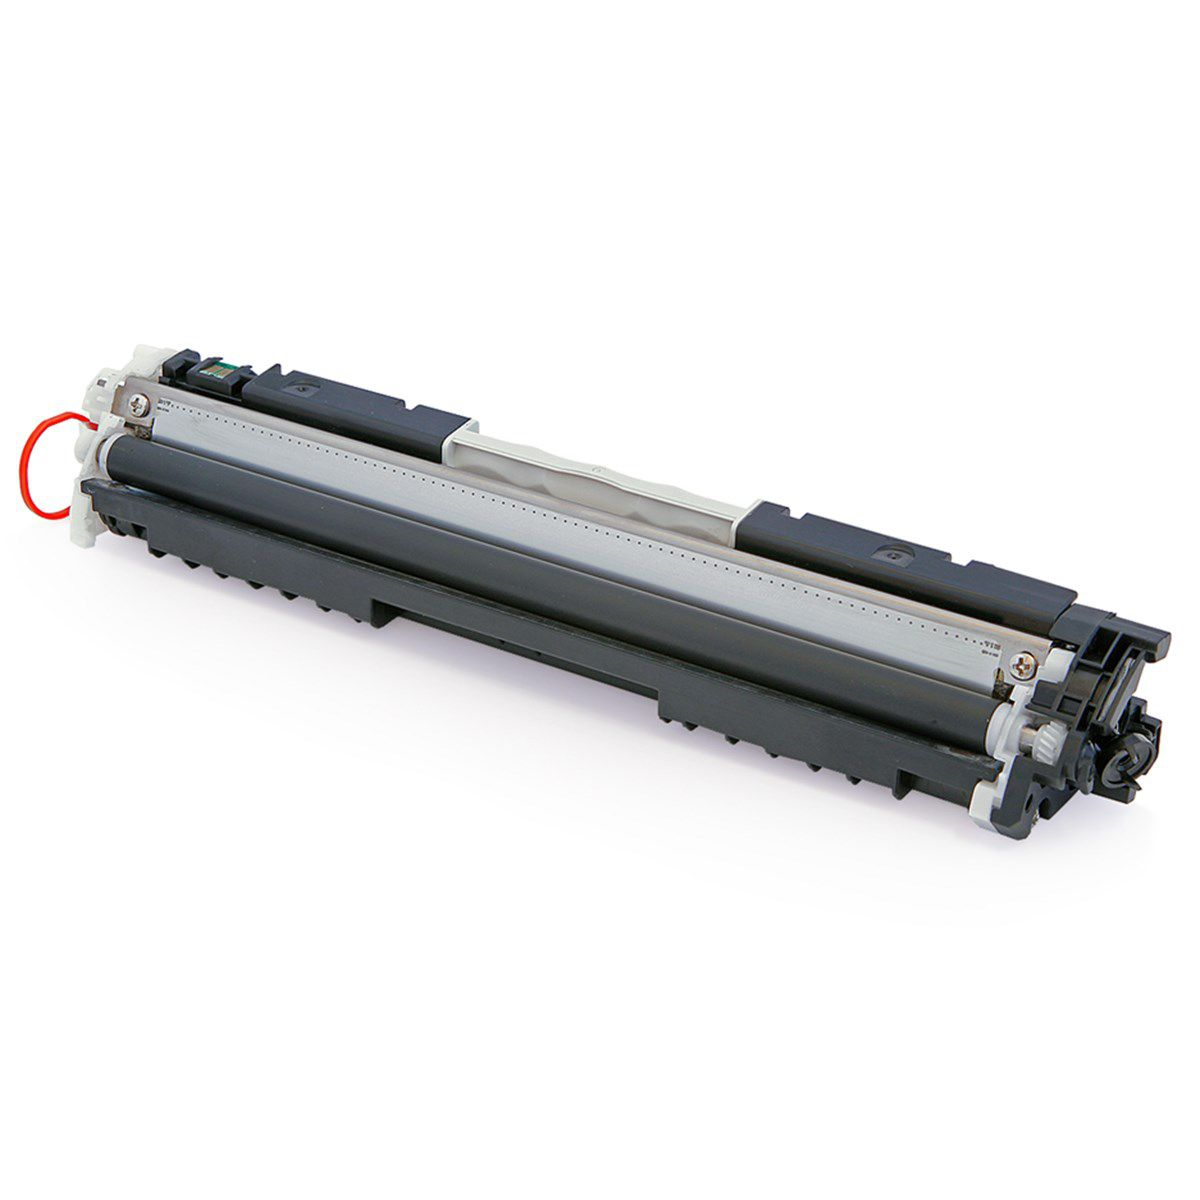 TONER HP 1025 CE311 126A 26A CYAN - COMPATIVEL ARES